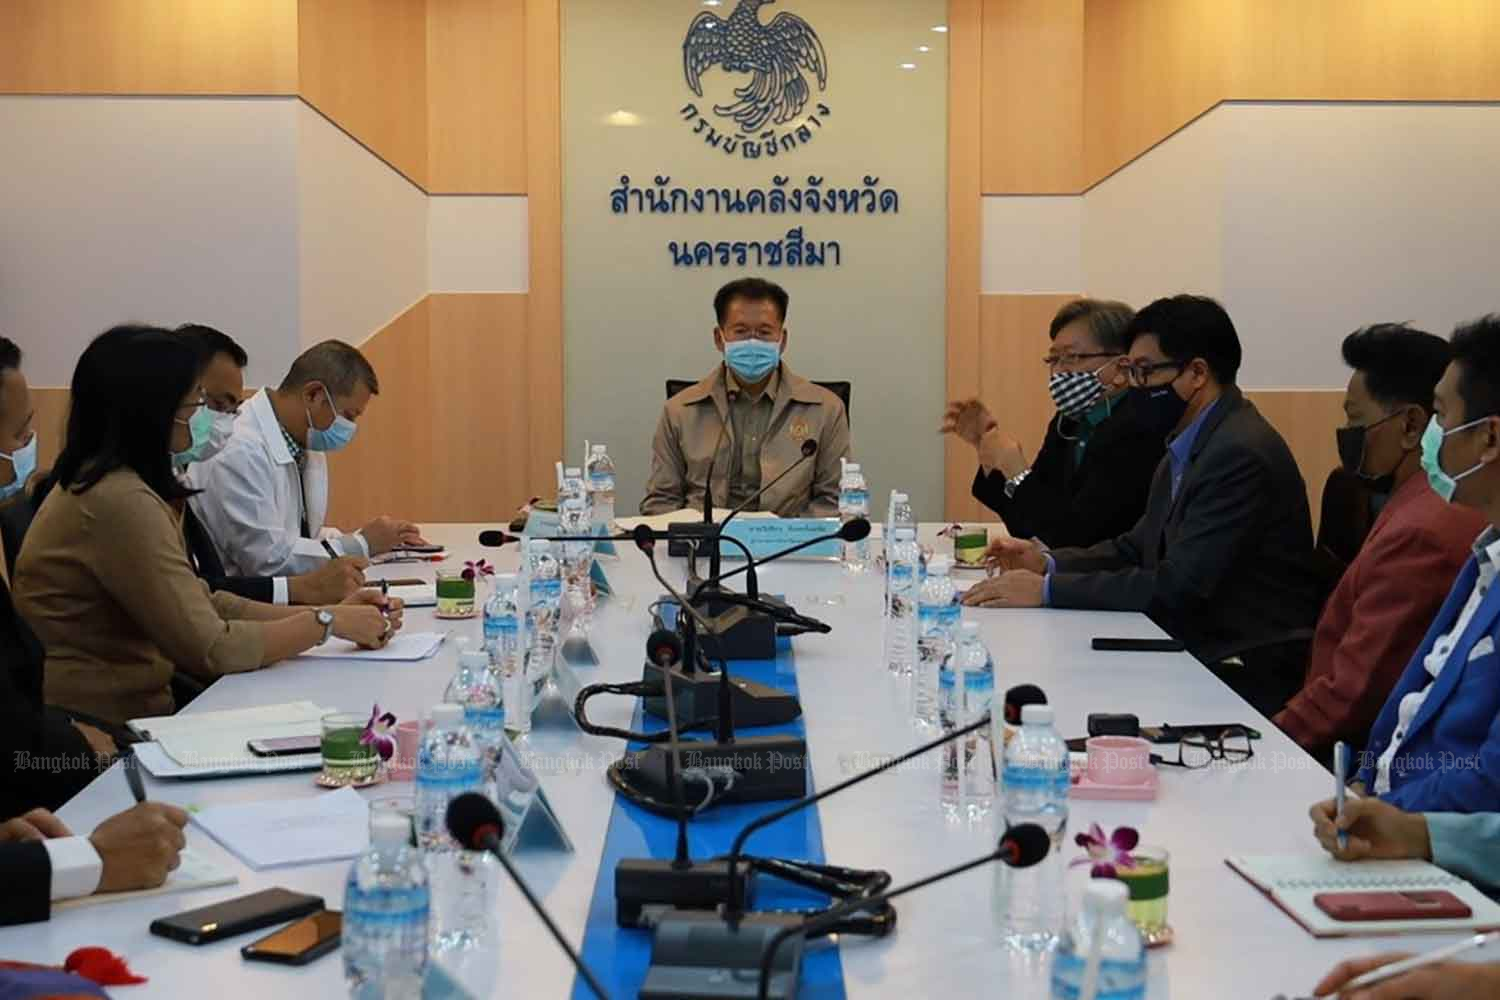 Nakhon Ratchasima governor Wichian Chantaranothai, centre, discusses disease control with provincial authorities at the Nakhon Ratchasima provincial hall on Wednesday. (Photo: Prasit Tangprasert)